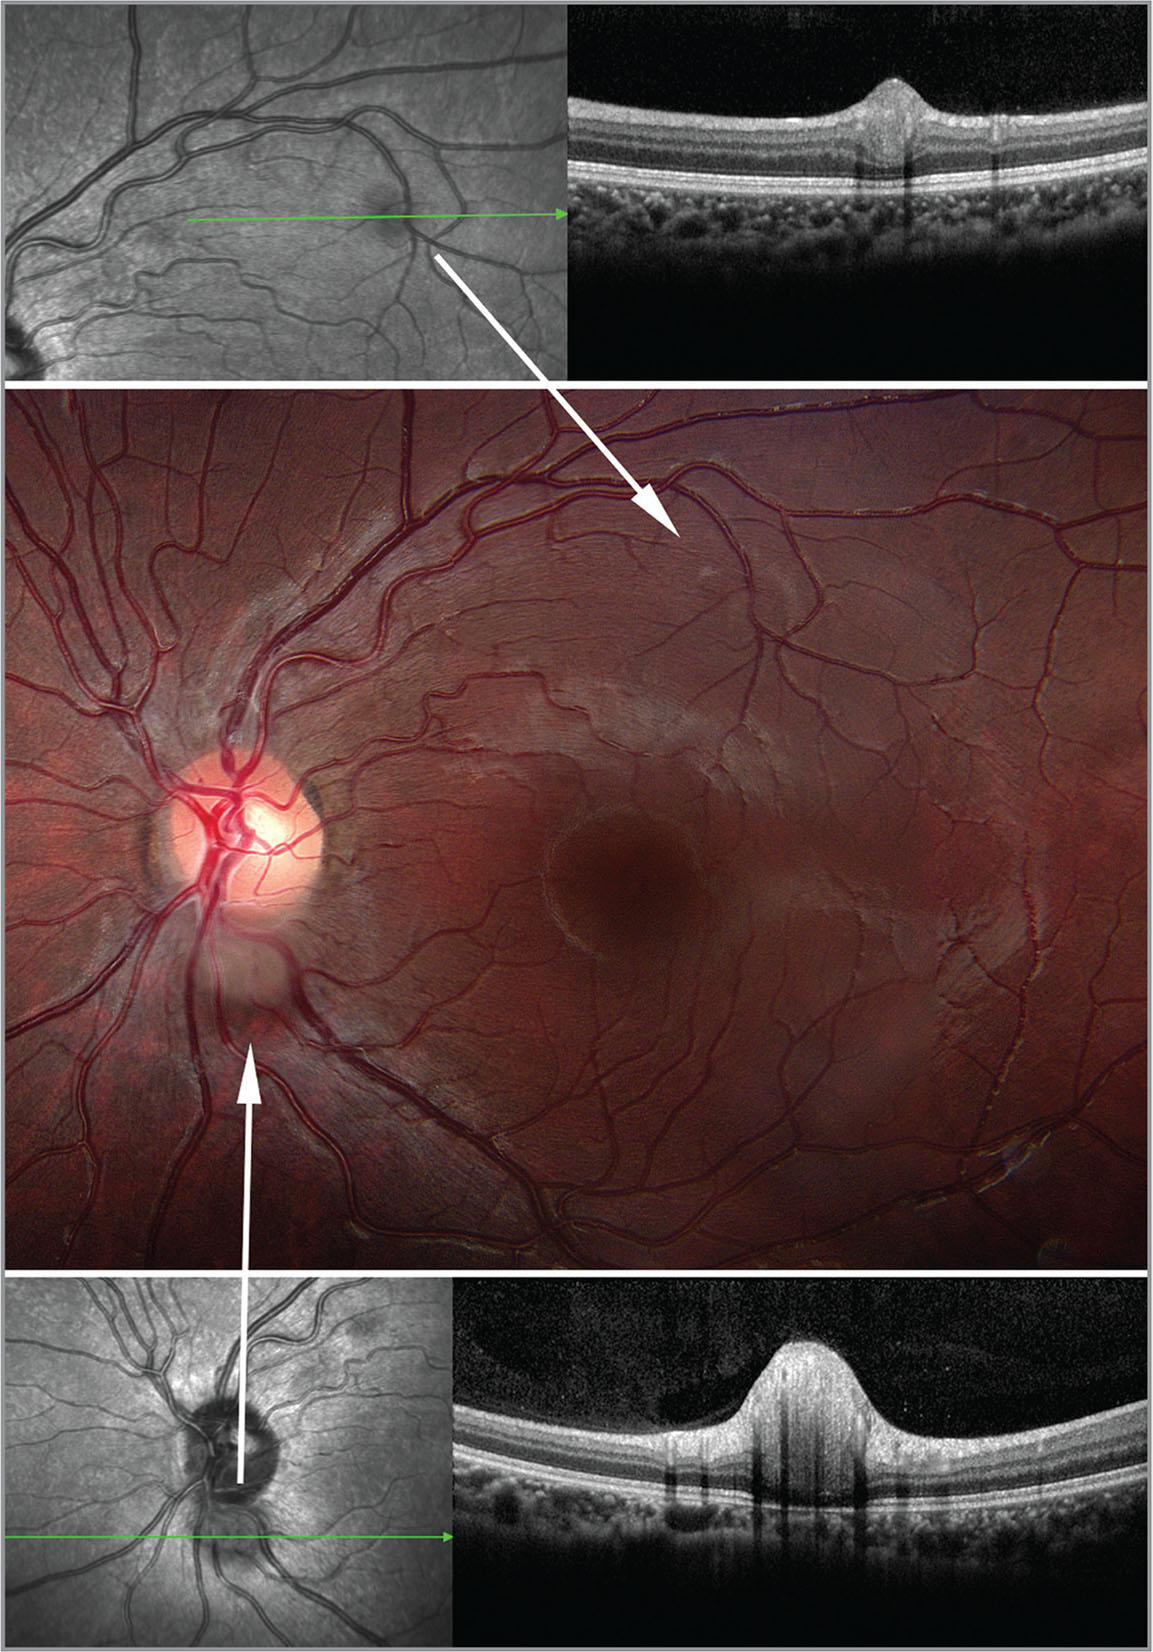 Spectral-domain optical coherence tomography, left eye. A small, subtle, whitish-gray retinal lesion in the superior macula (upper white arrow) appears solid and contiguous with the inner retinal layers. A similar but larger retinal lesion located at the inferior margin of the optic disc (lower white arrow) also appears to arise from inner retinal layers and has replaced much of the outer retinal layers.